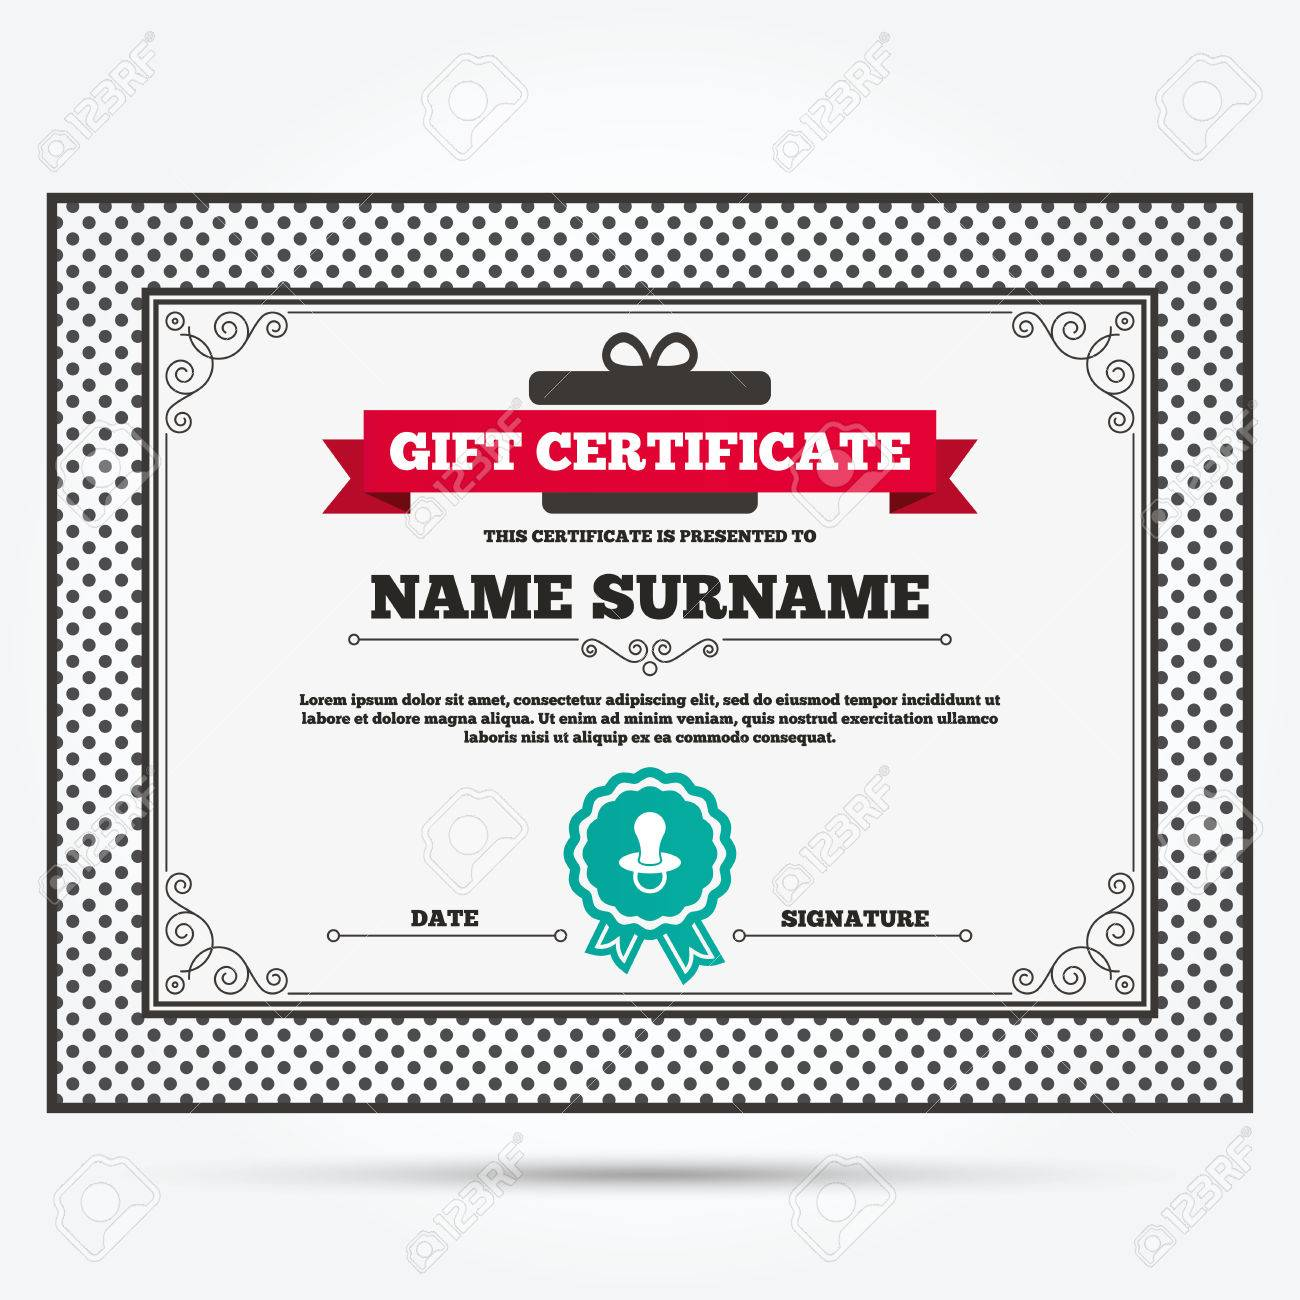 Share certificate template uk word choice image certificate ms word certificate template gallery templates example free download share certificate template free download uk choice xflitez Images